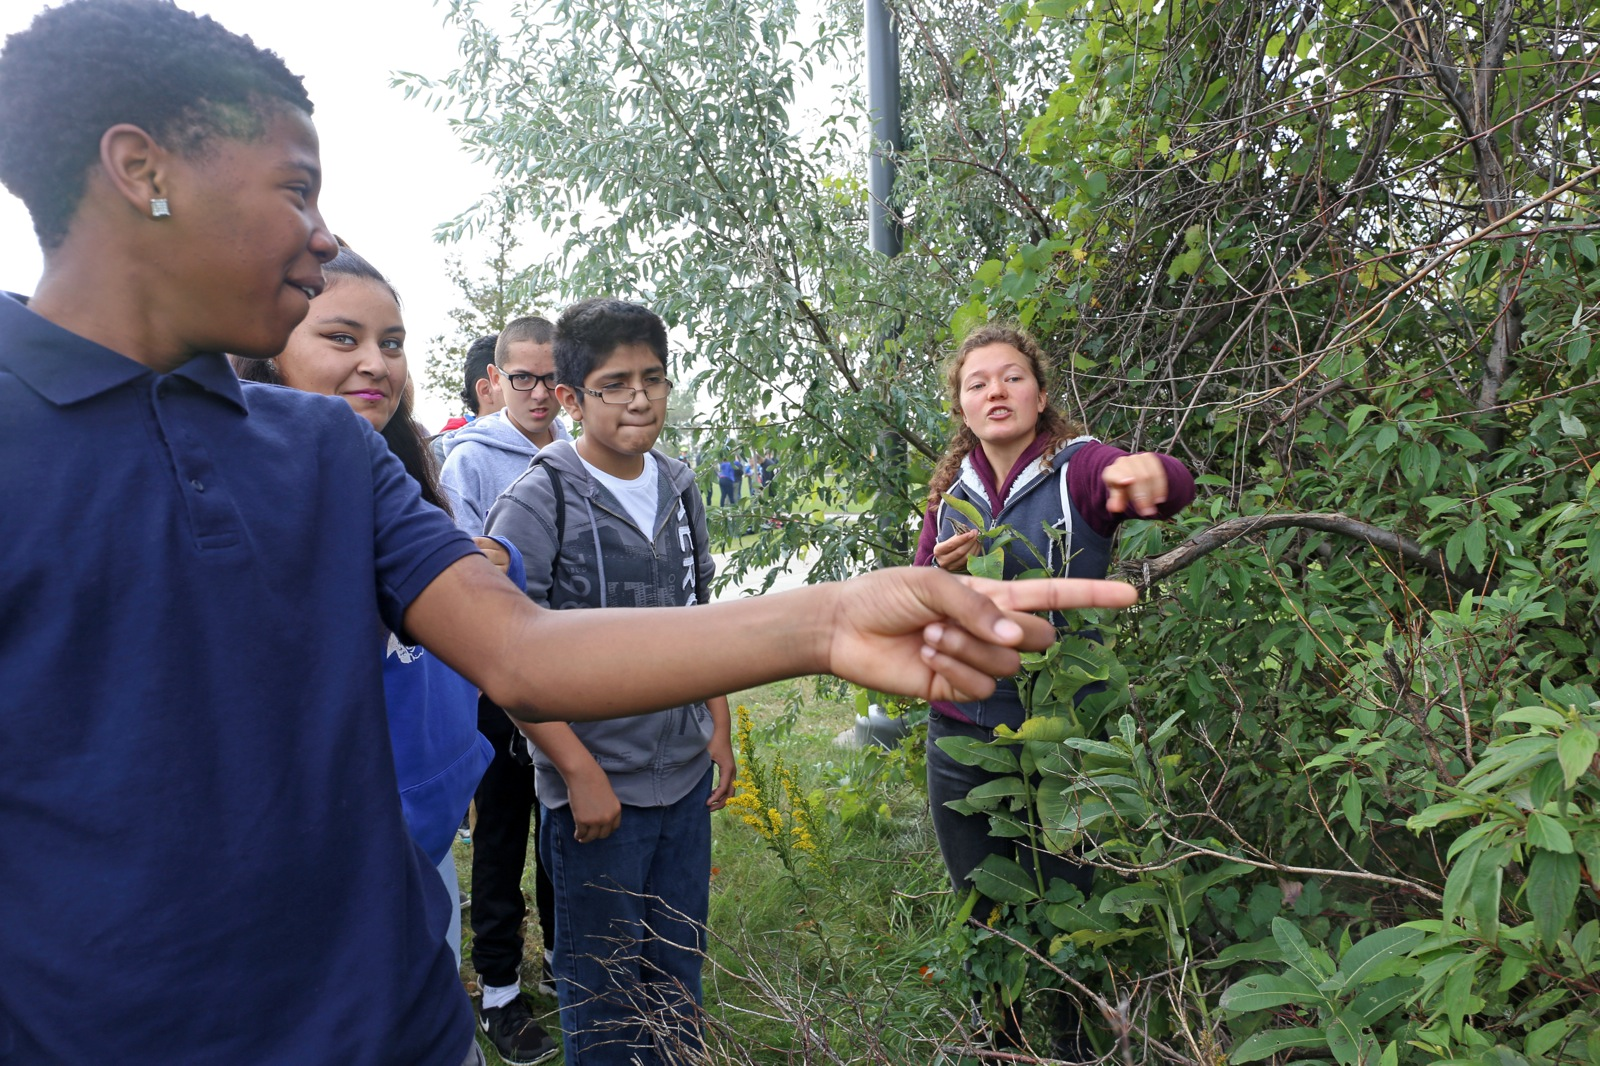 a boy points at a plant as the students learn about local wild plants